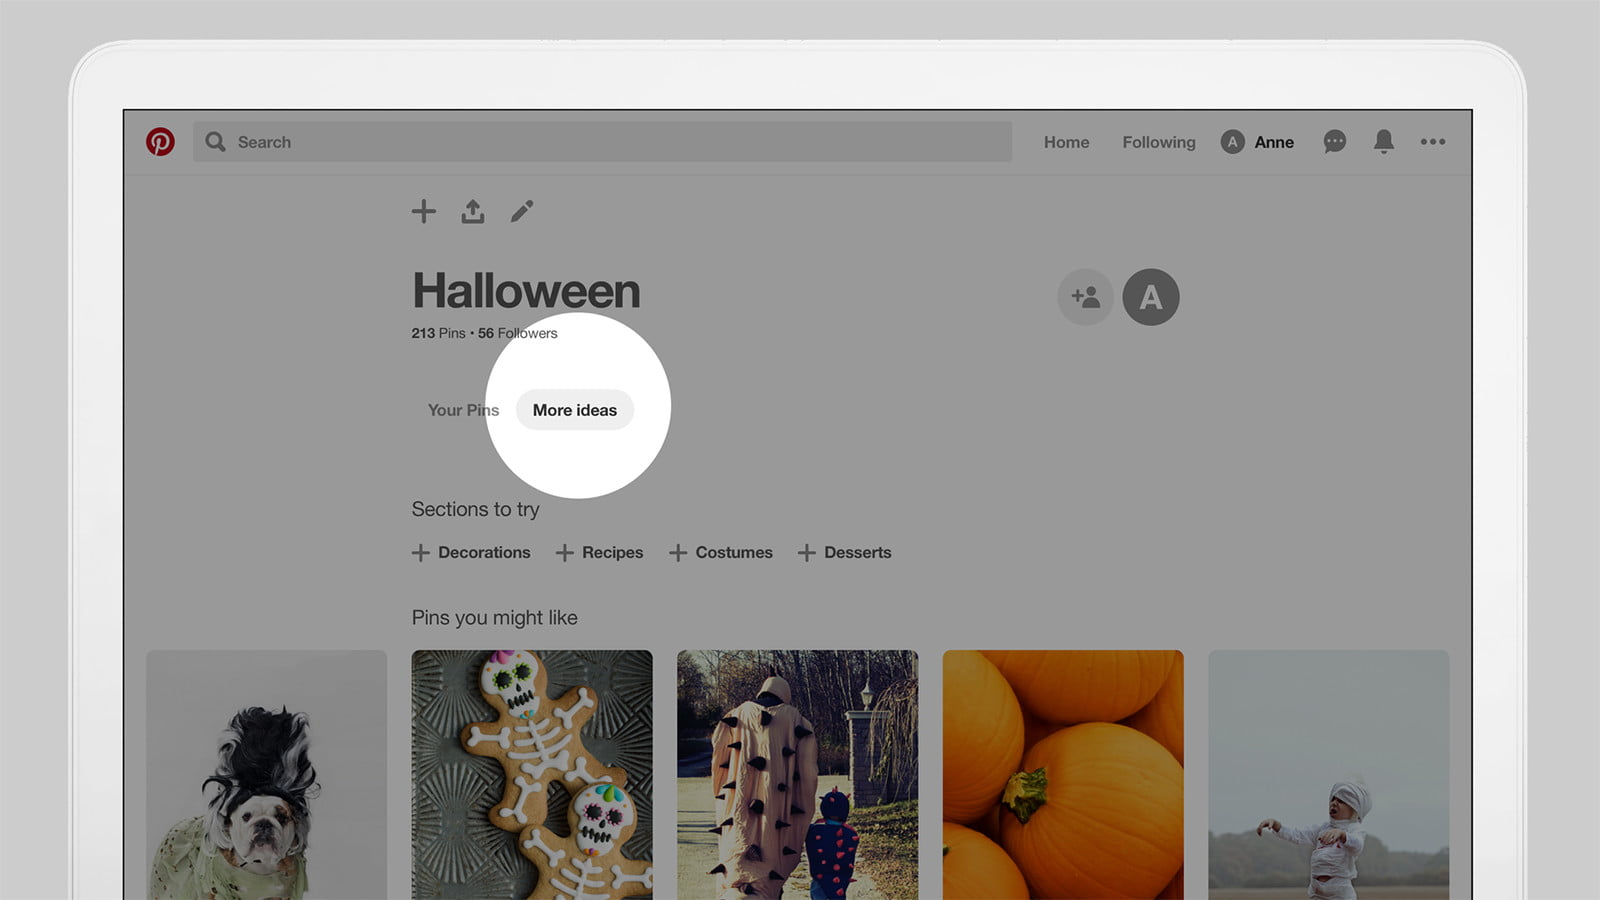 Halloween Decorations Ideas 2020 Pinterest New Pinterest Tab Makes Suggestions For Your Boards   Digital Trends